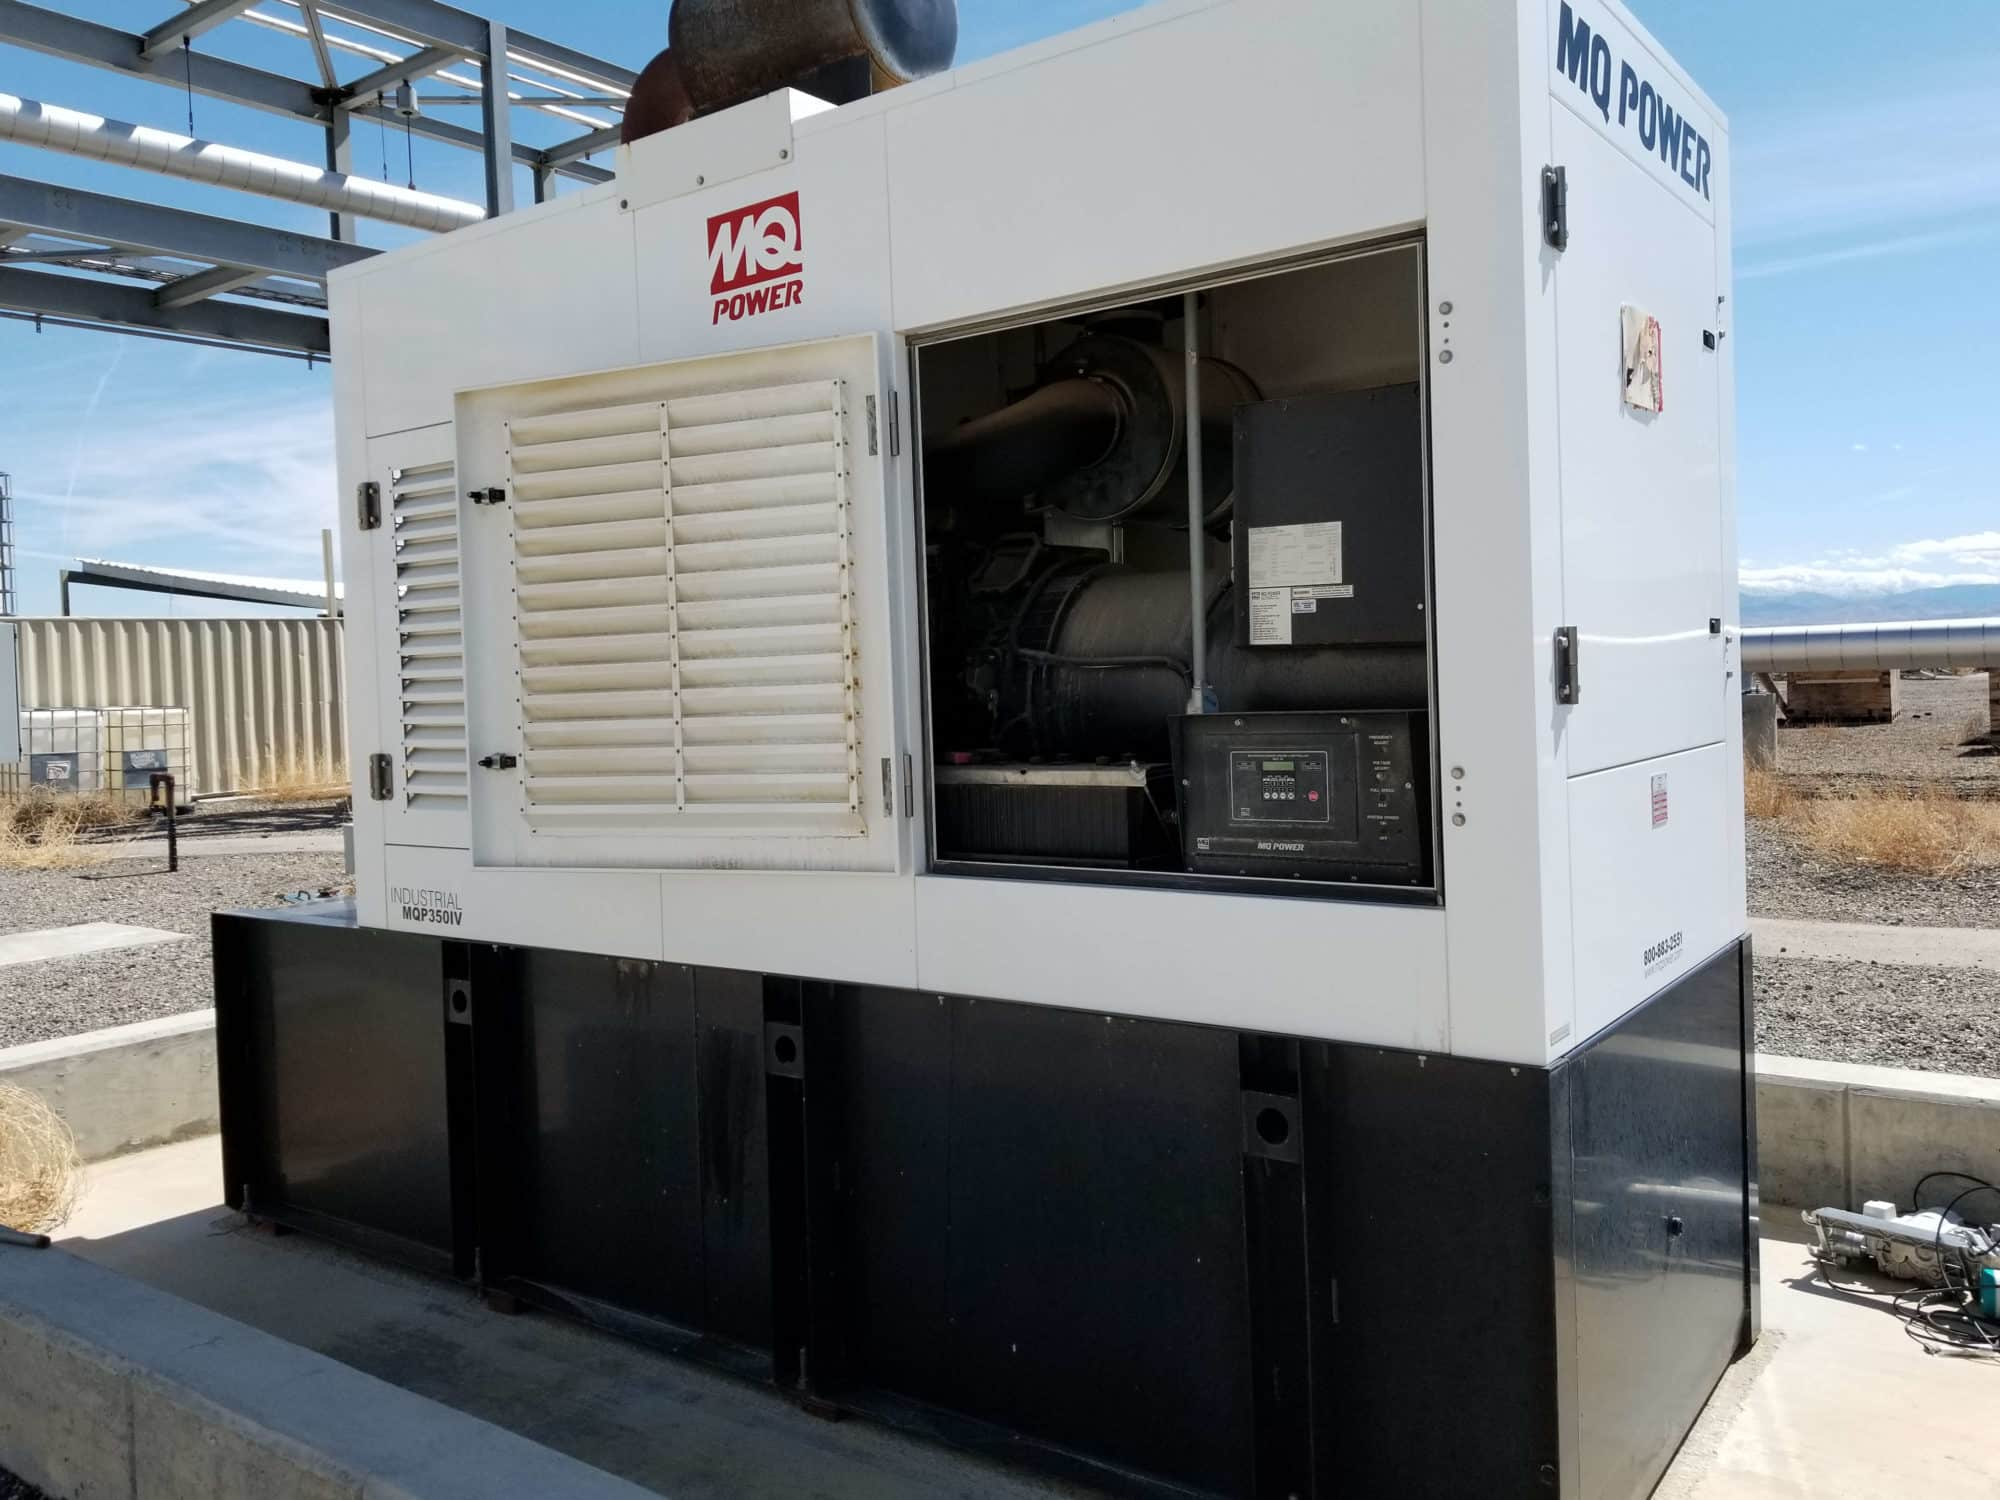 Used 350 kW Multiquip Diesel Generator – EPA Tier 3 – SOLD!